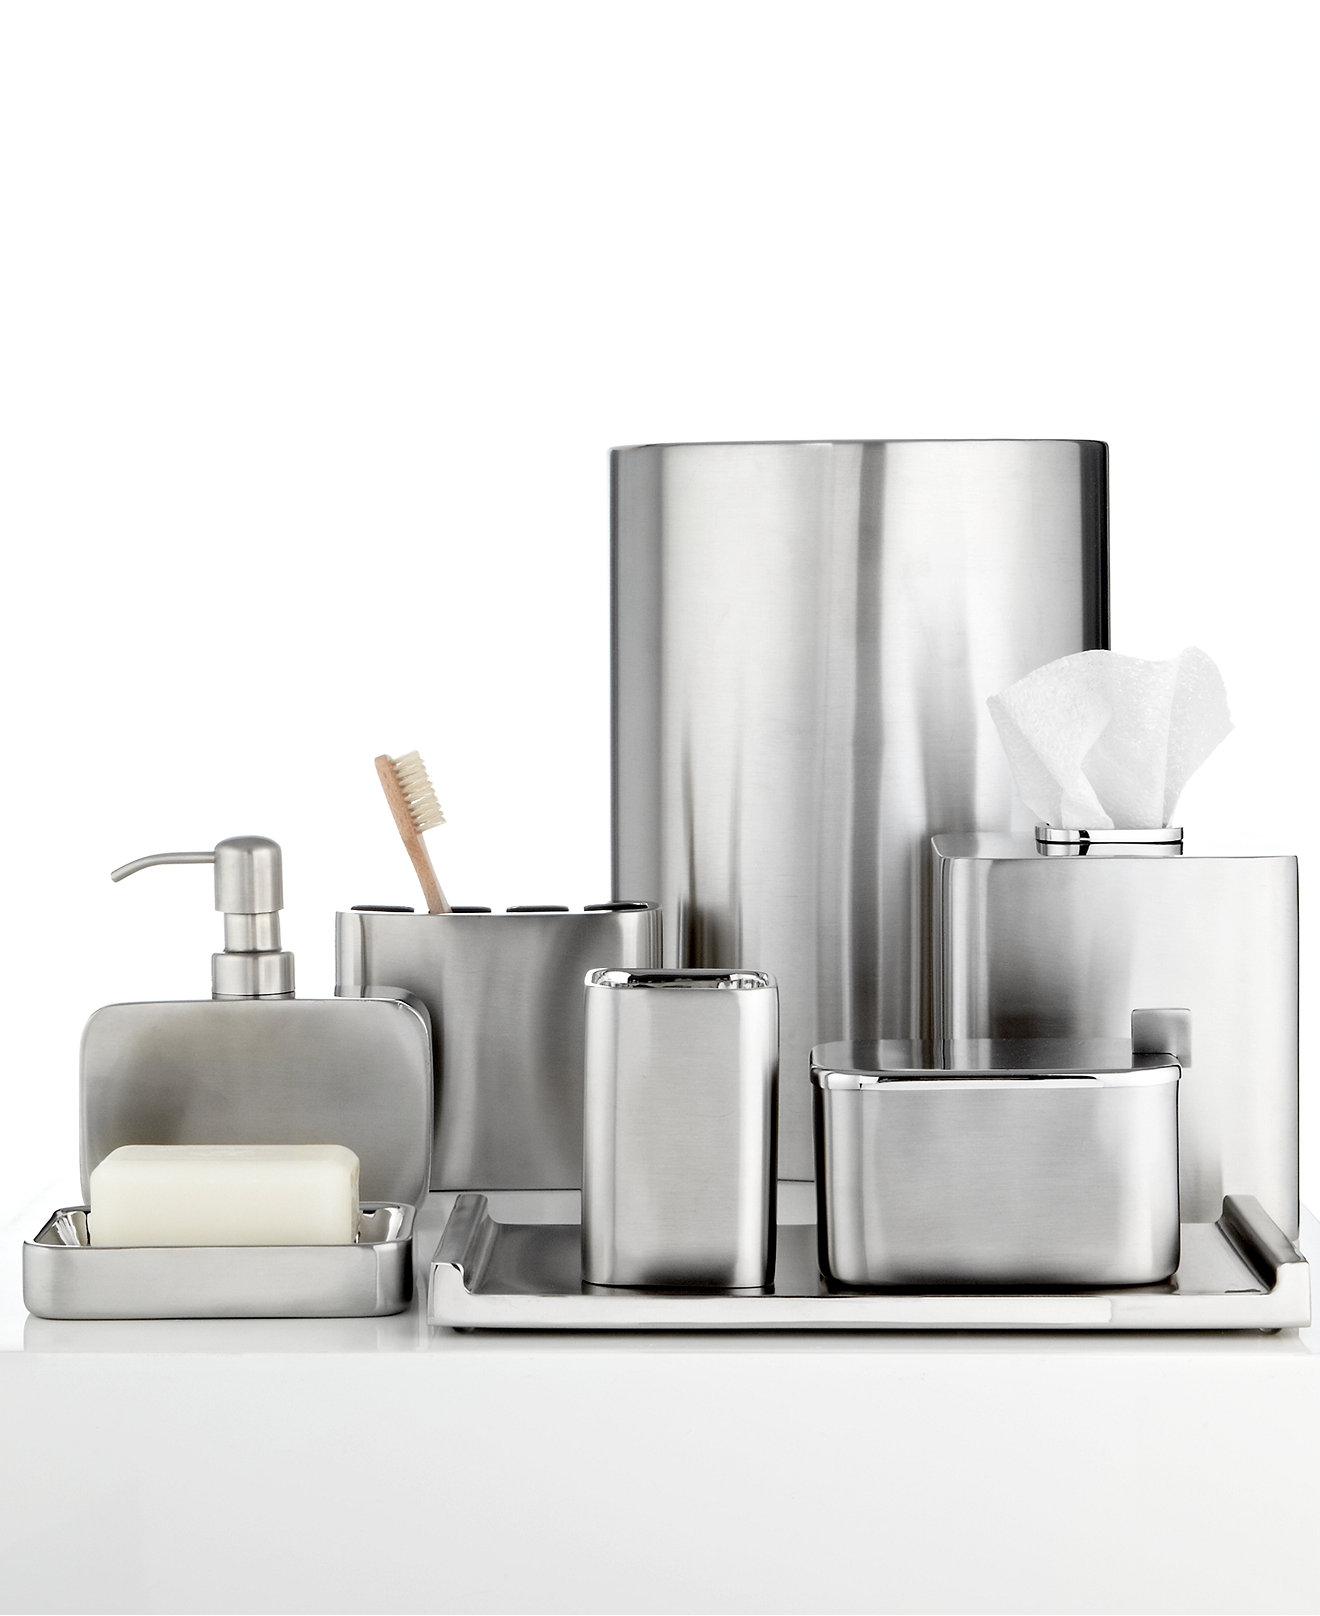 Bathroom Vanity Accessory Sets Bathroom Accessories And Sets Macys